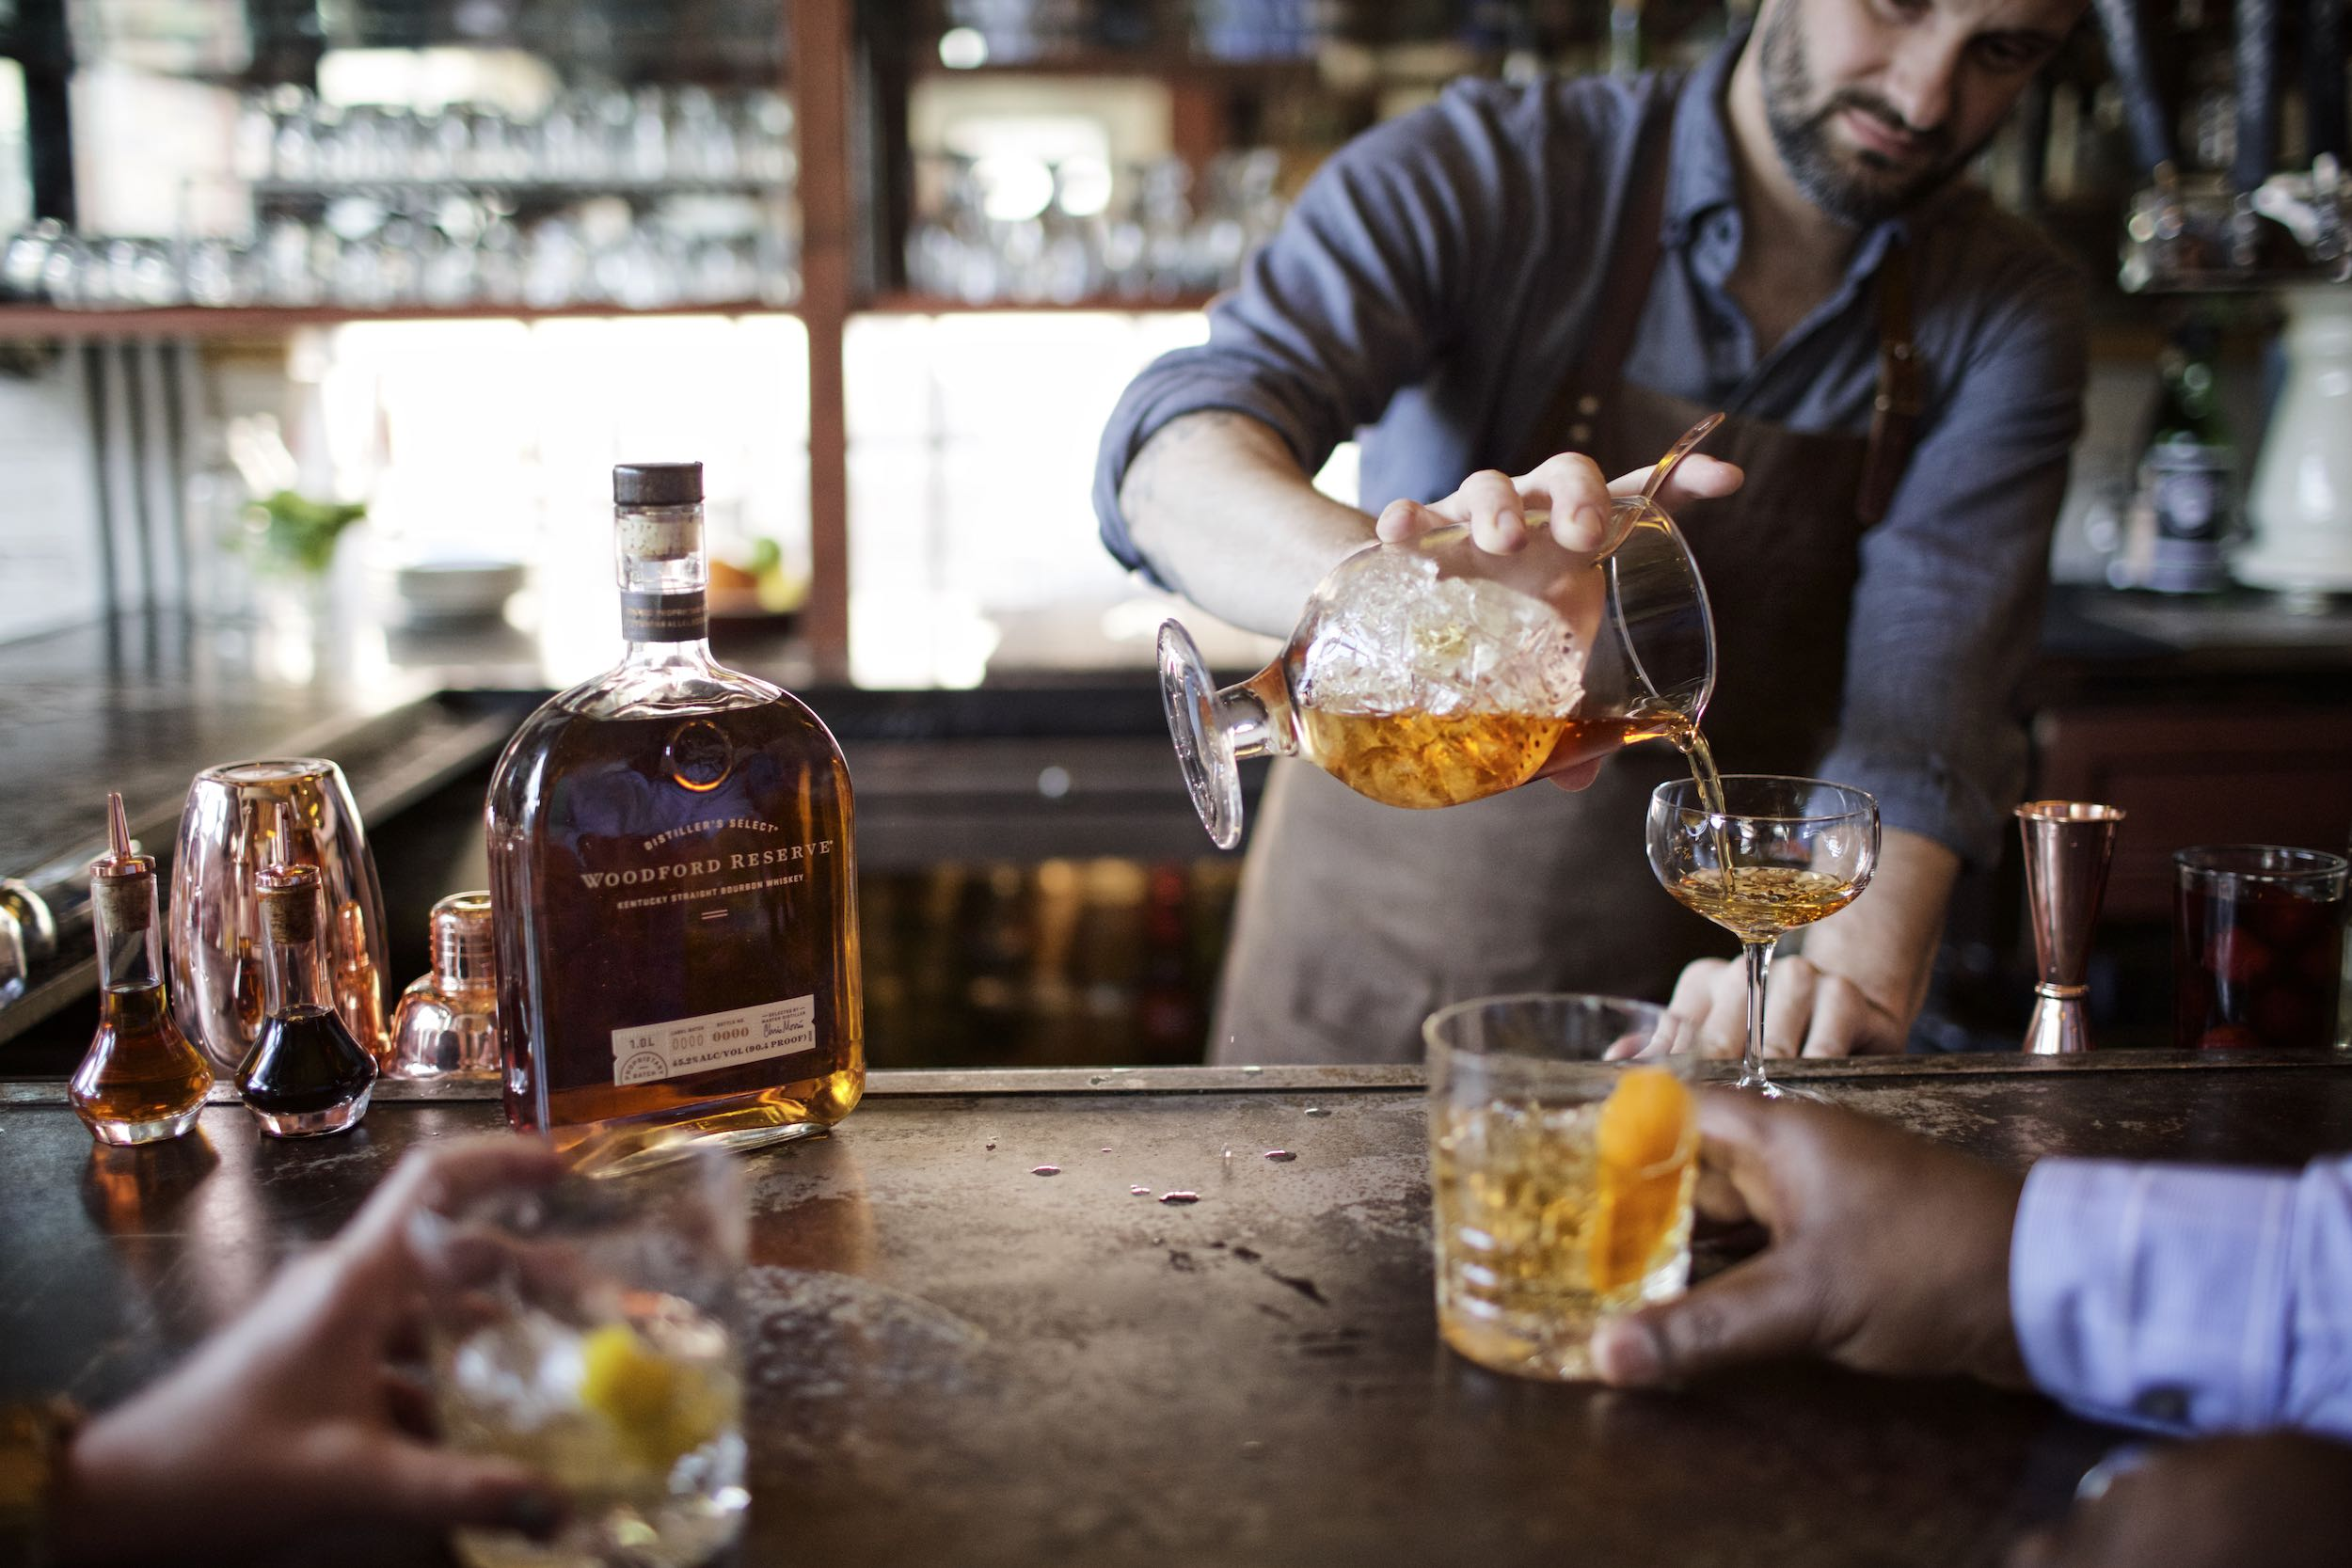 Jody Horton Photography - Woodford Reserve Bourbon Whiskey Ad with bartender pouring into a coupe glass.